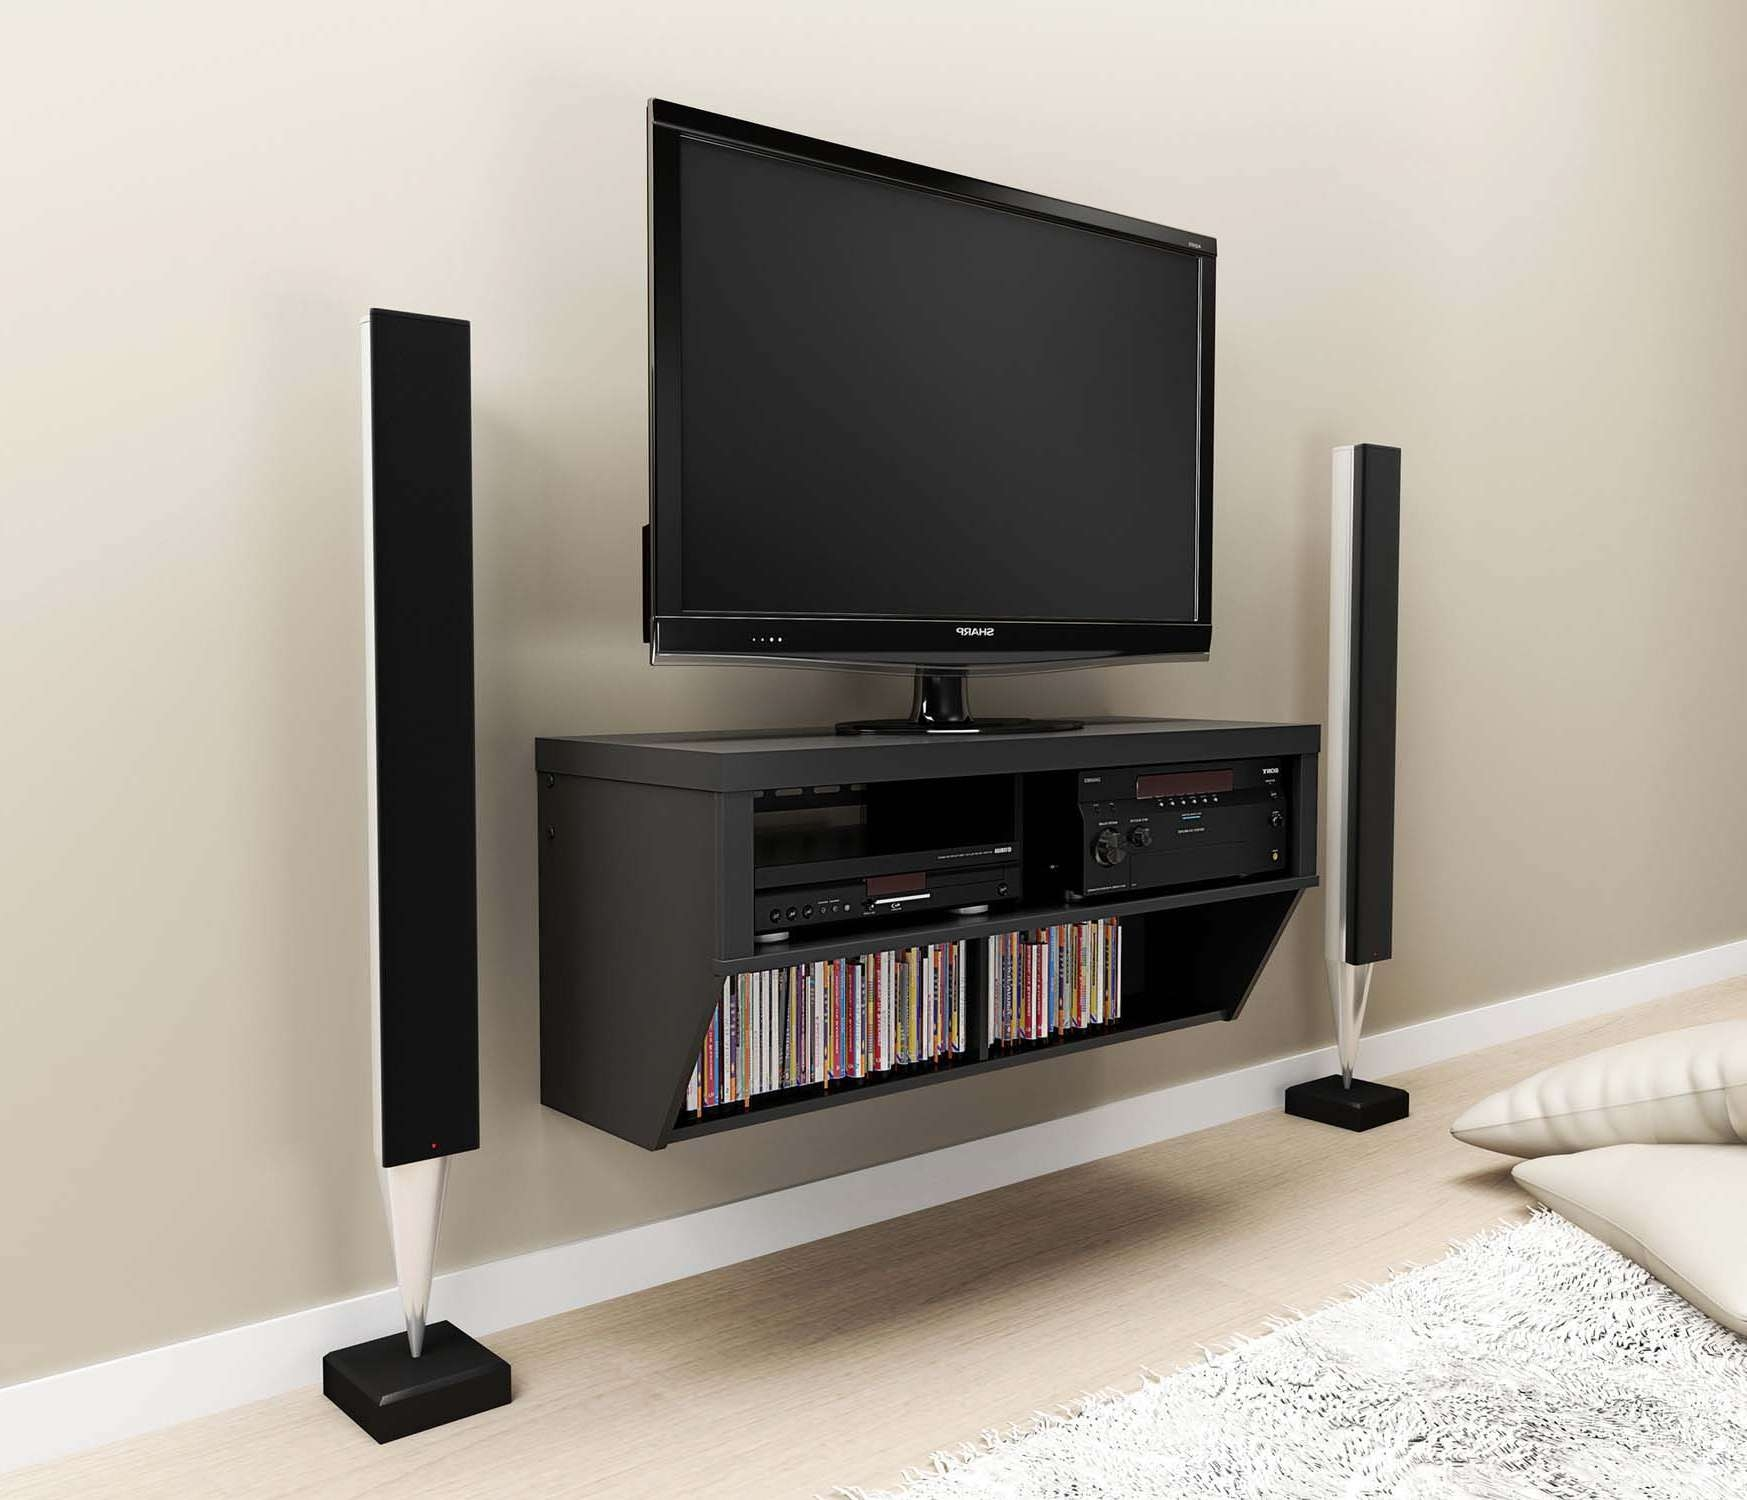 Black Stained Oak Wall Mounted Media Shelf And Tv Stand Of Trendy Throughout White Wall Mounted Tv Stands (View 14 of 15)